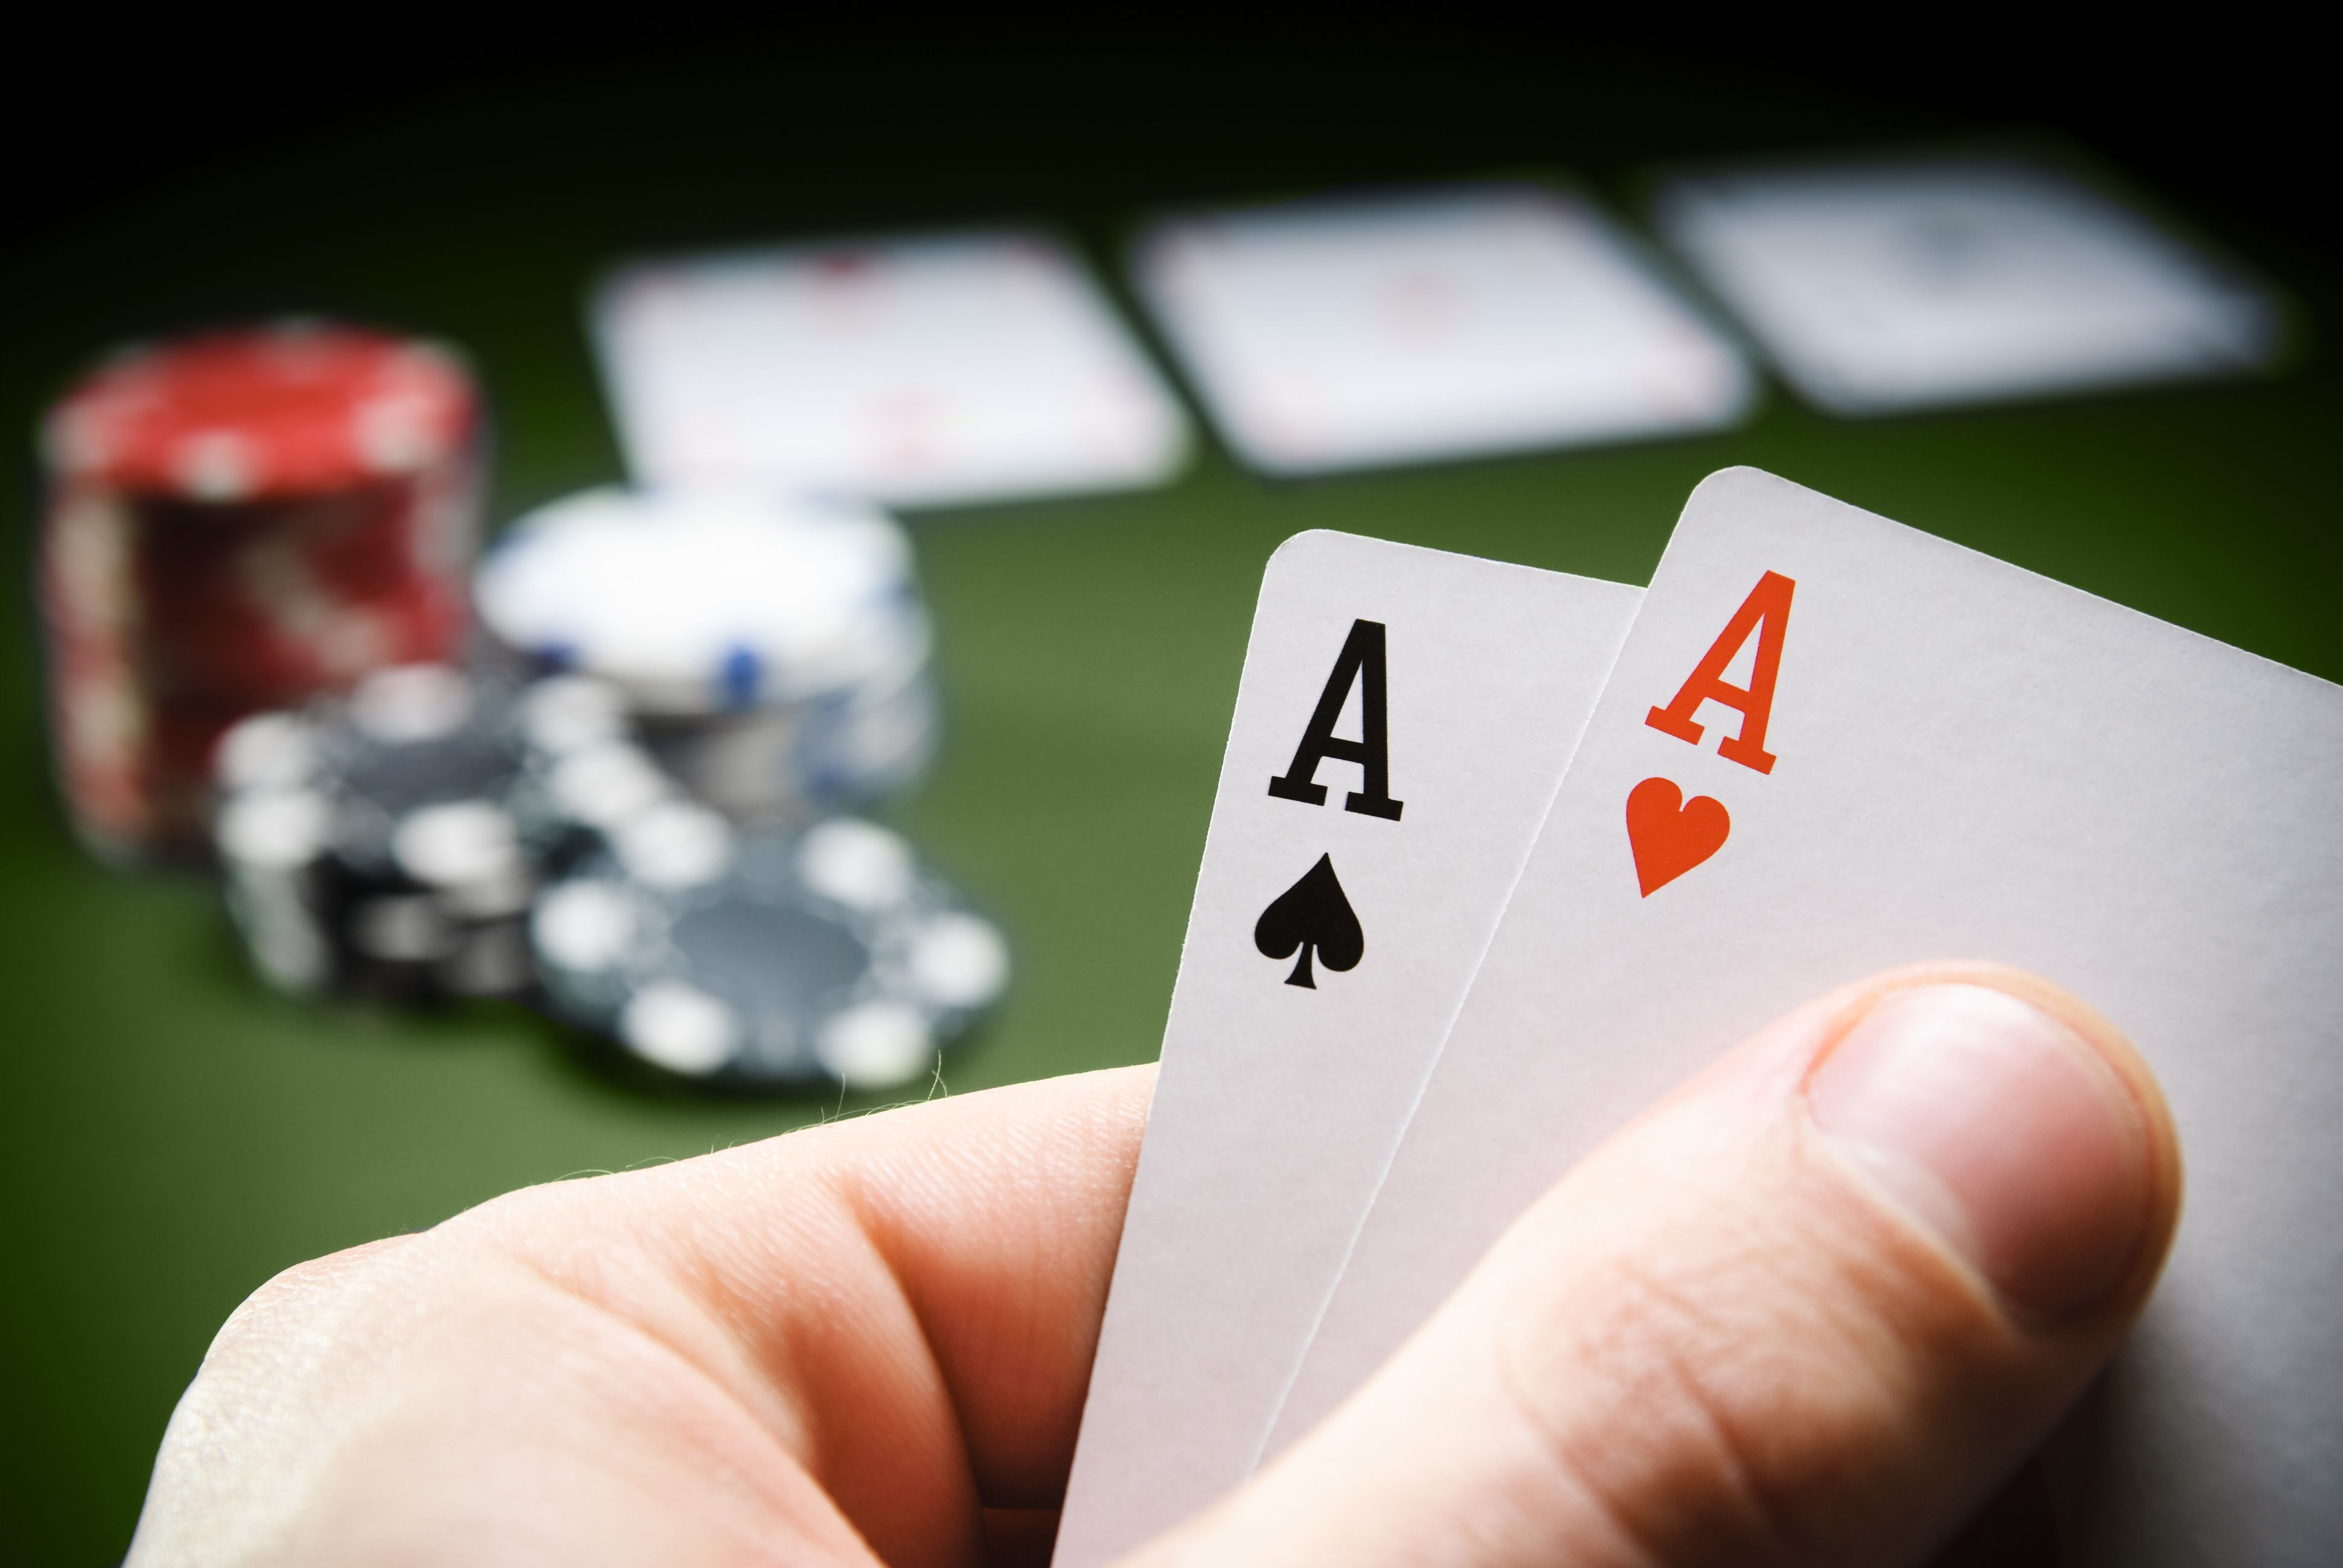 Five Easy Ways You Can Improve at Texas Hold 'Em Poker | Online poker, Poker, Best casino